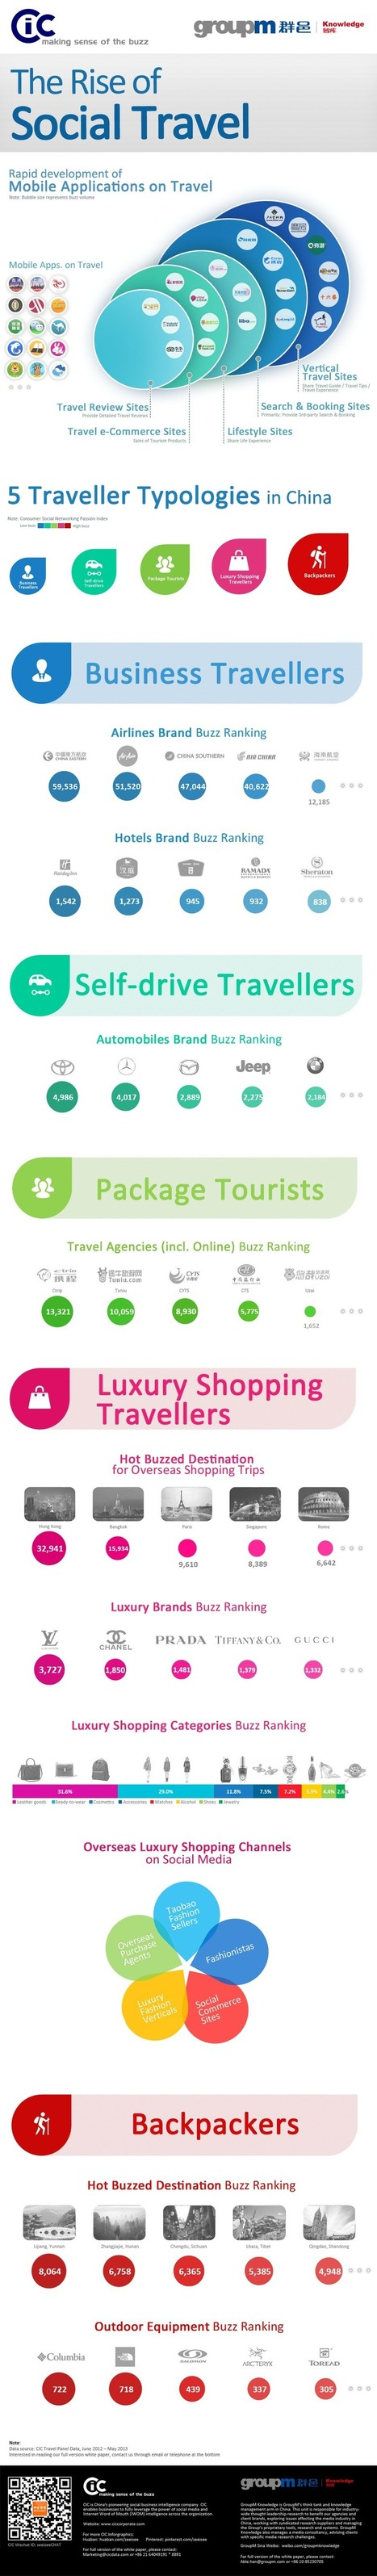 5 types of travellers among Chinese netizens | Retail Trends & Consumer behavior | Scoop.it